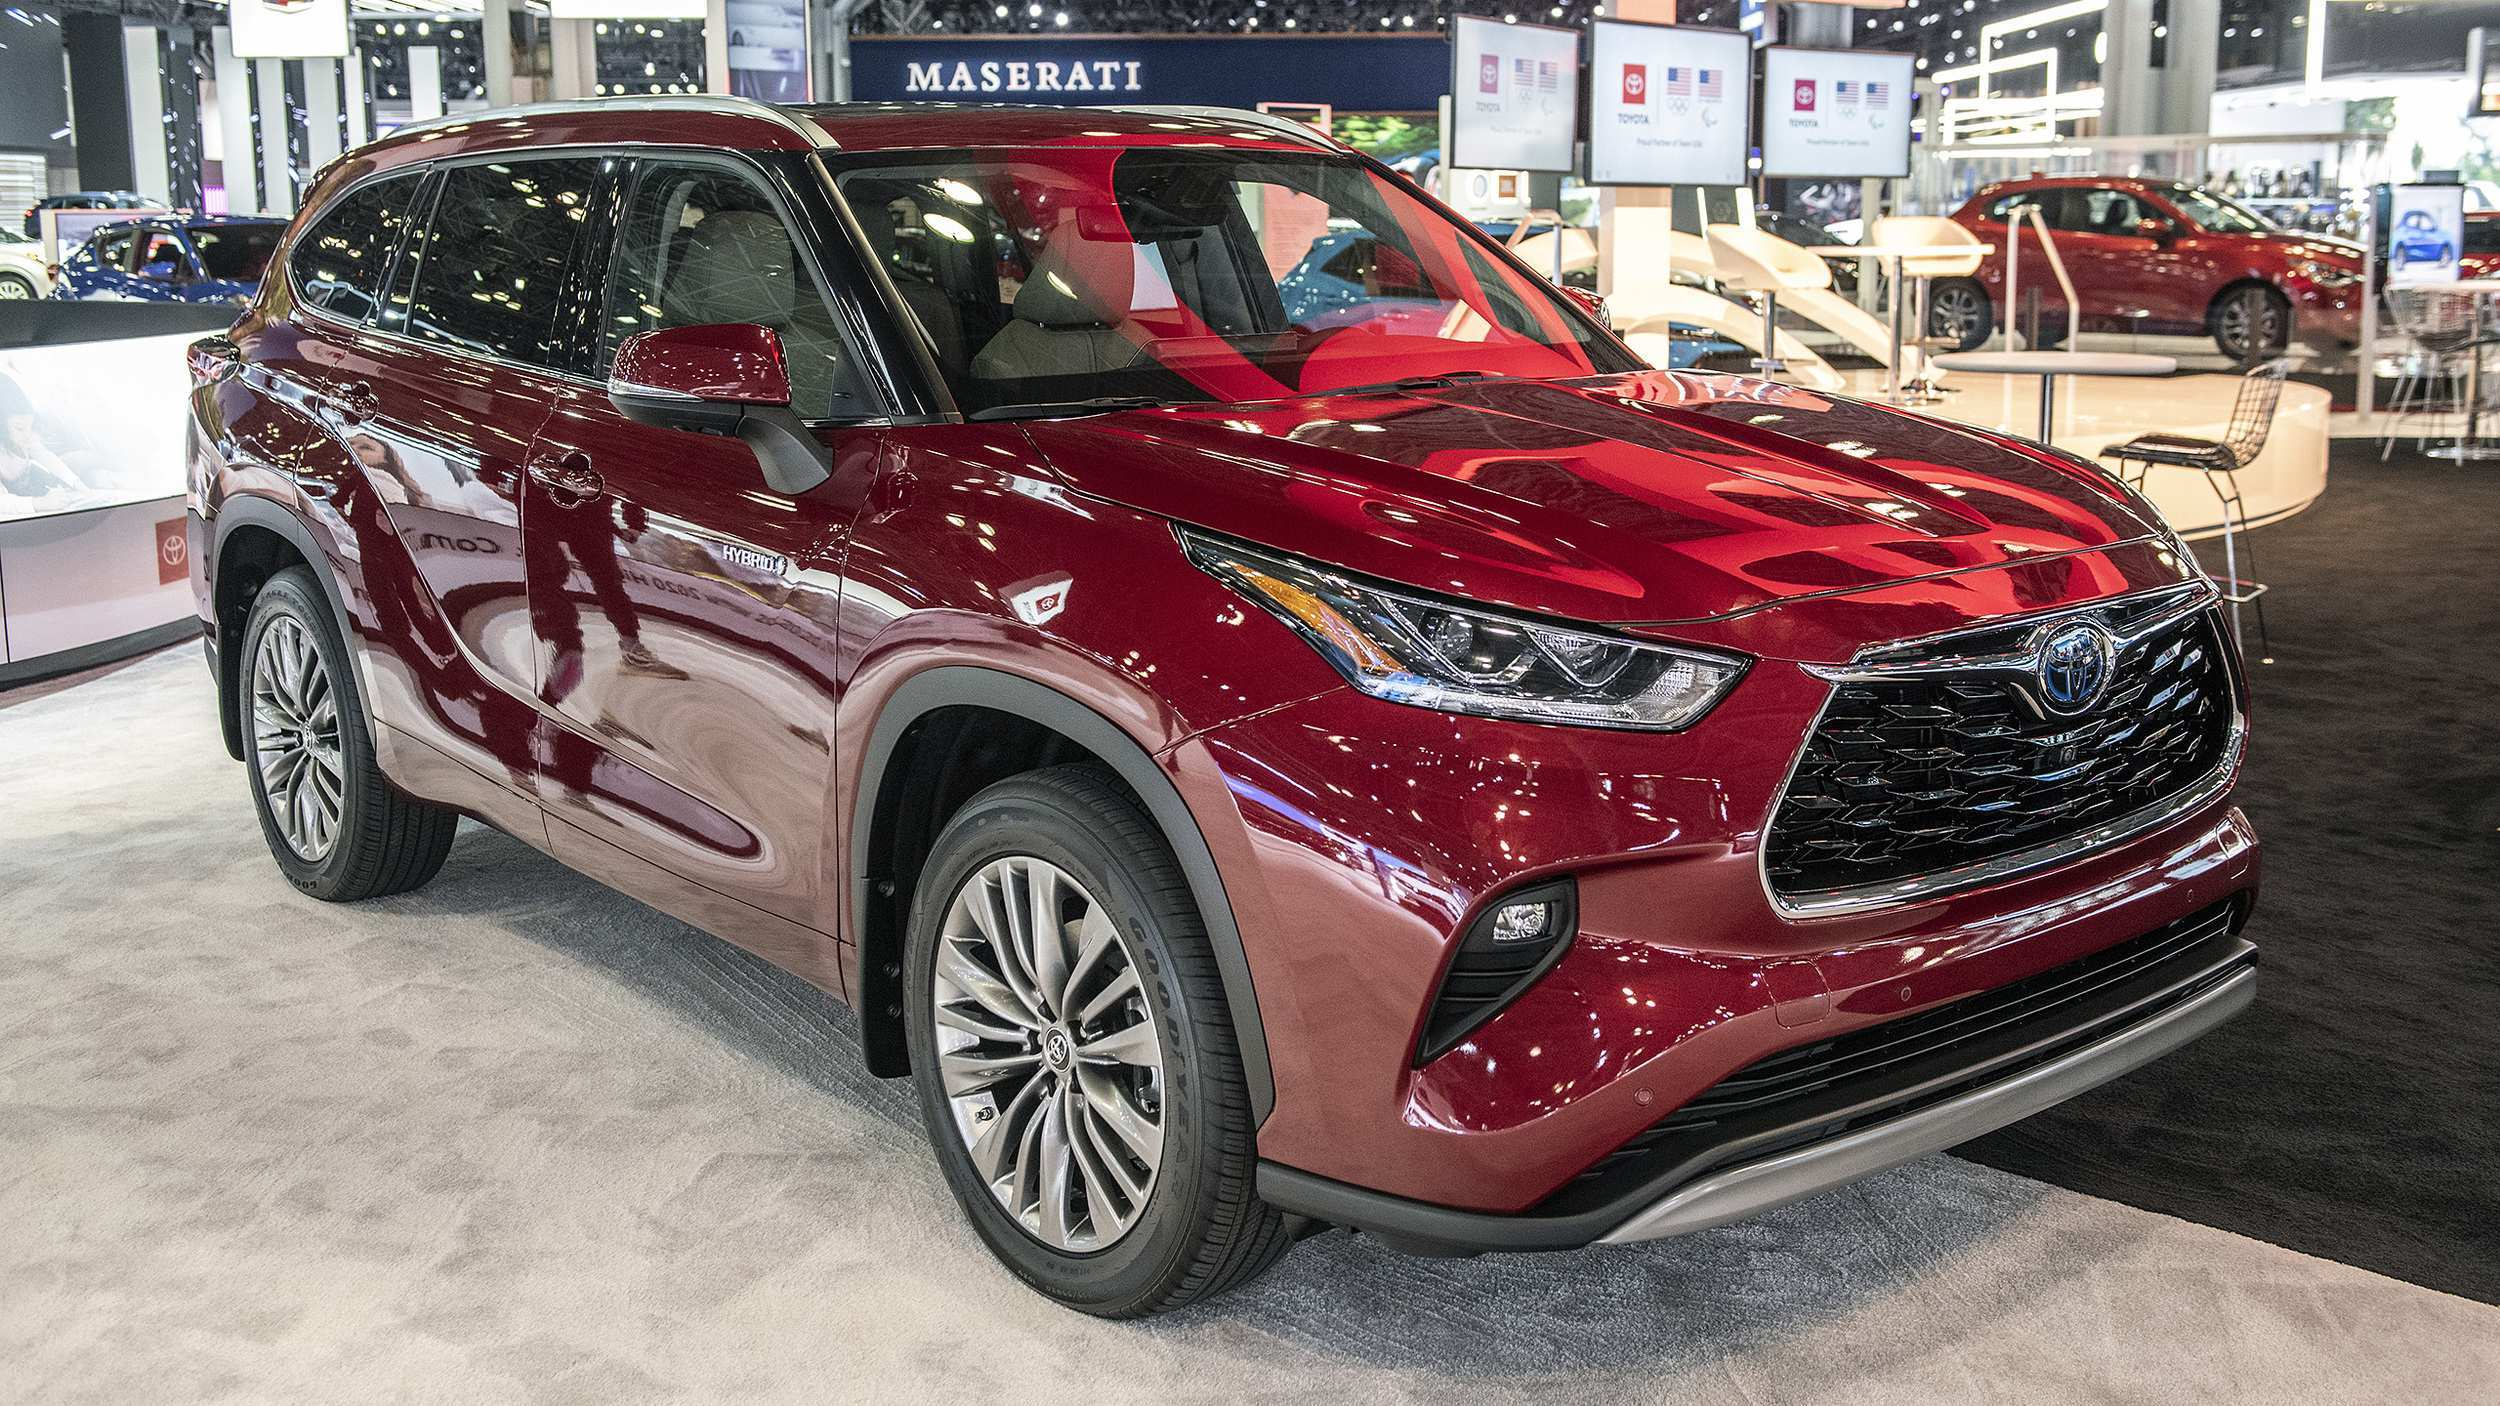 72 Gallery of Toyota Kluger Hybrid 2020 Exterior for Toyota Kluger Hybrid 2020